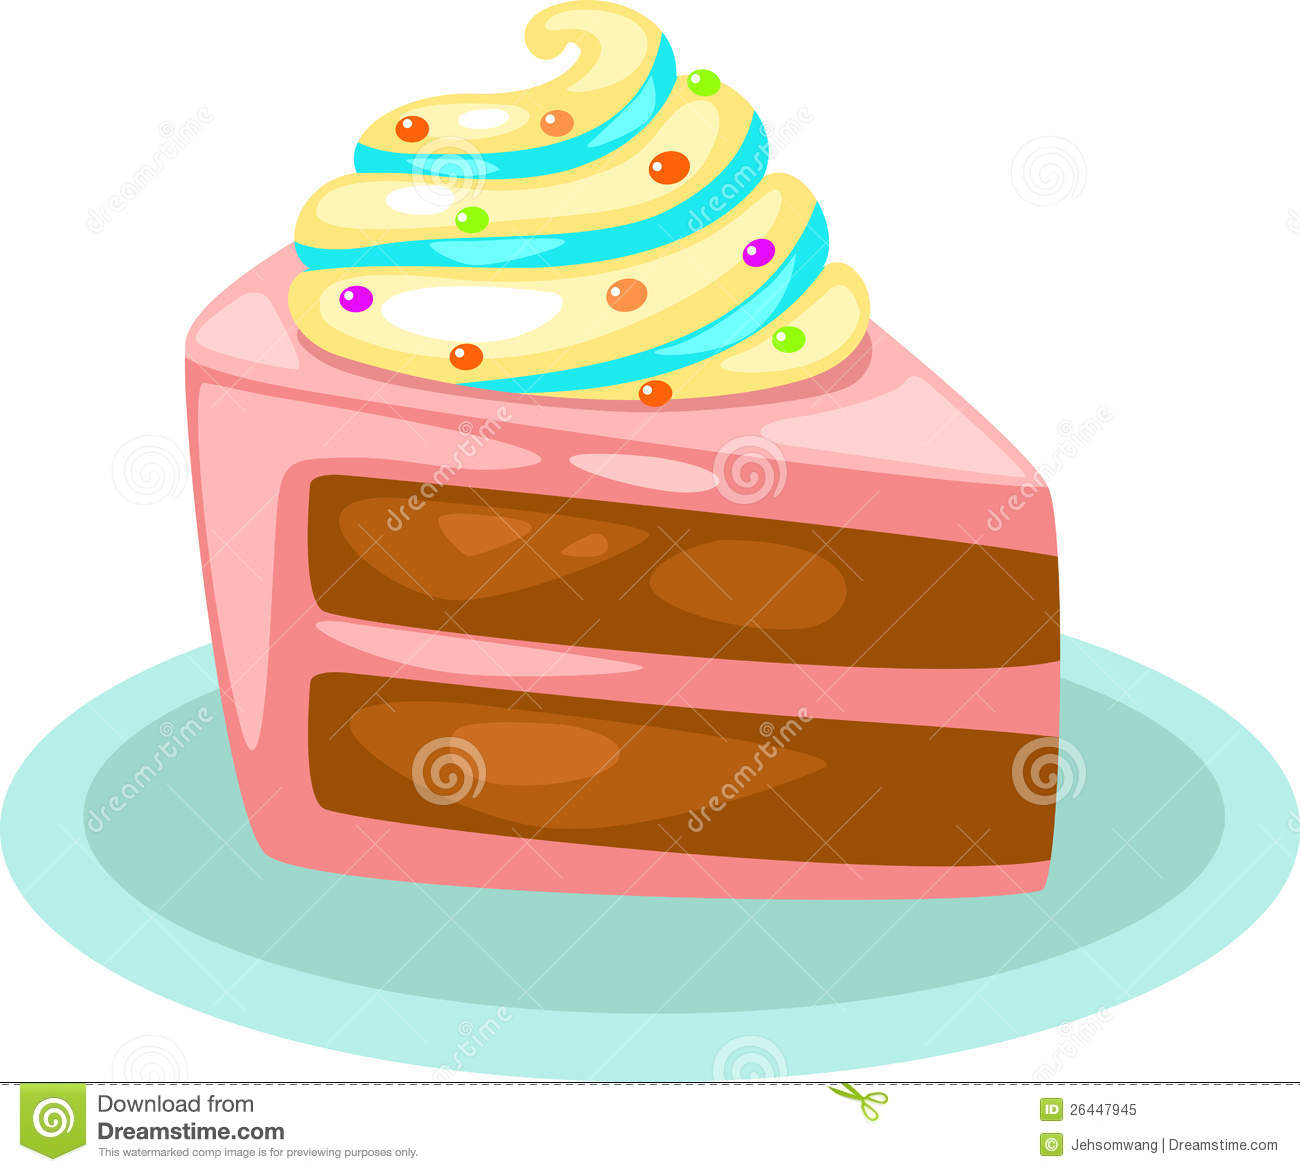 Royalty Free Stock Photo Cake Vector Image26447945 on orange juice pitcher